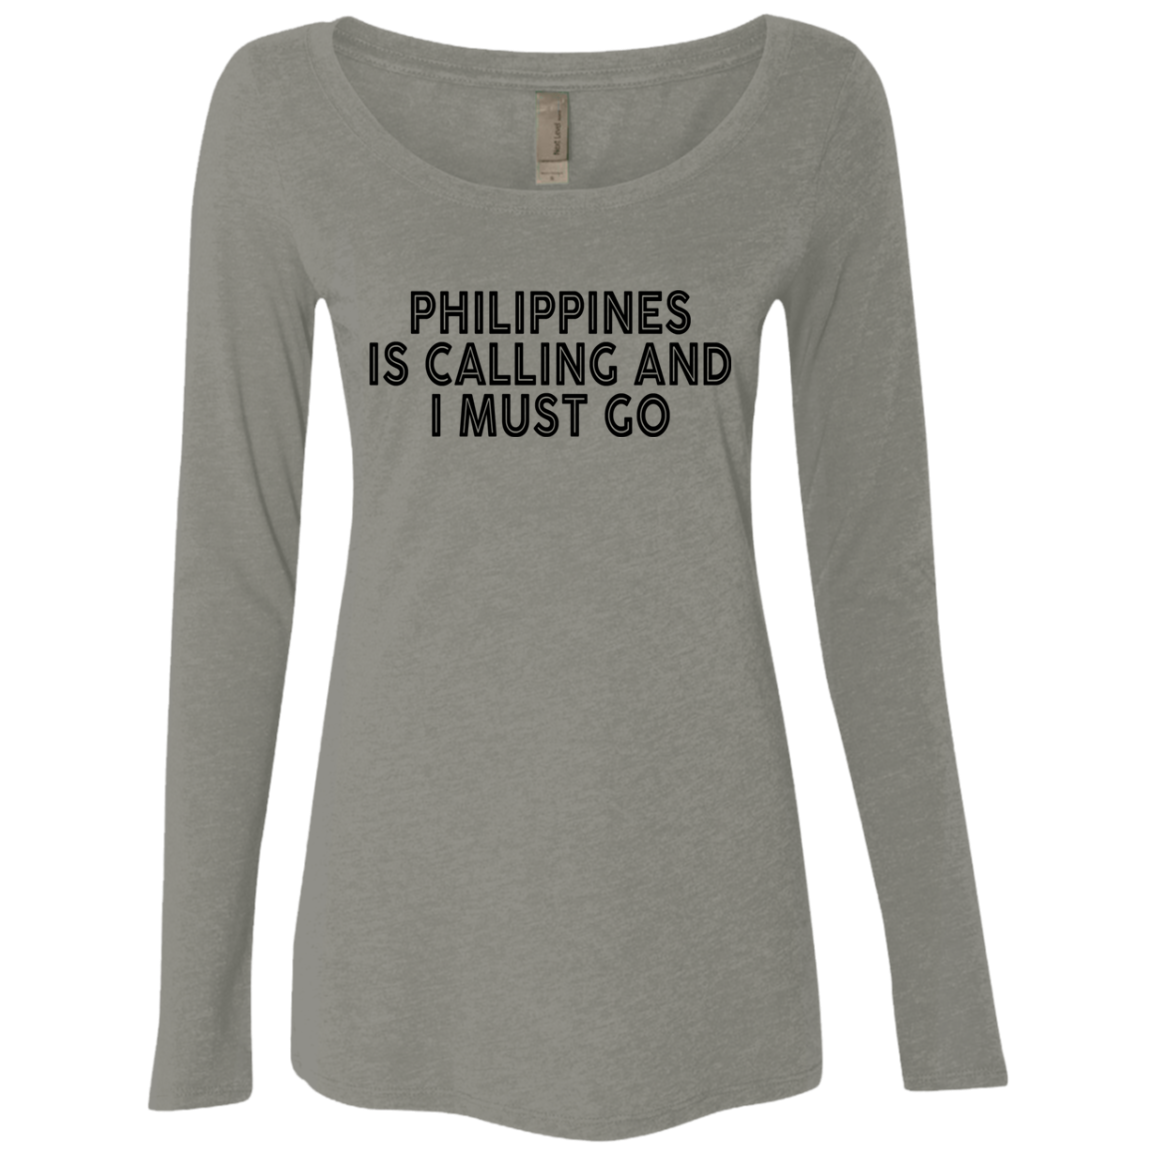 Pholoppines Is Calling And I Must Go Women's Long Sleeve Tee